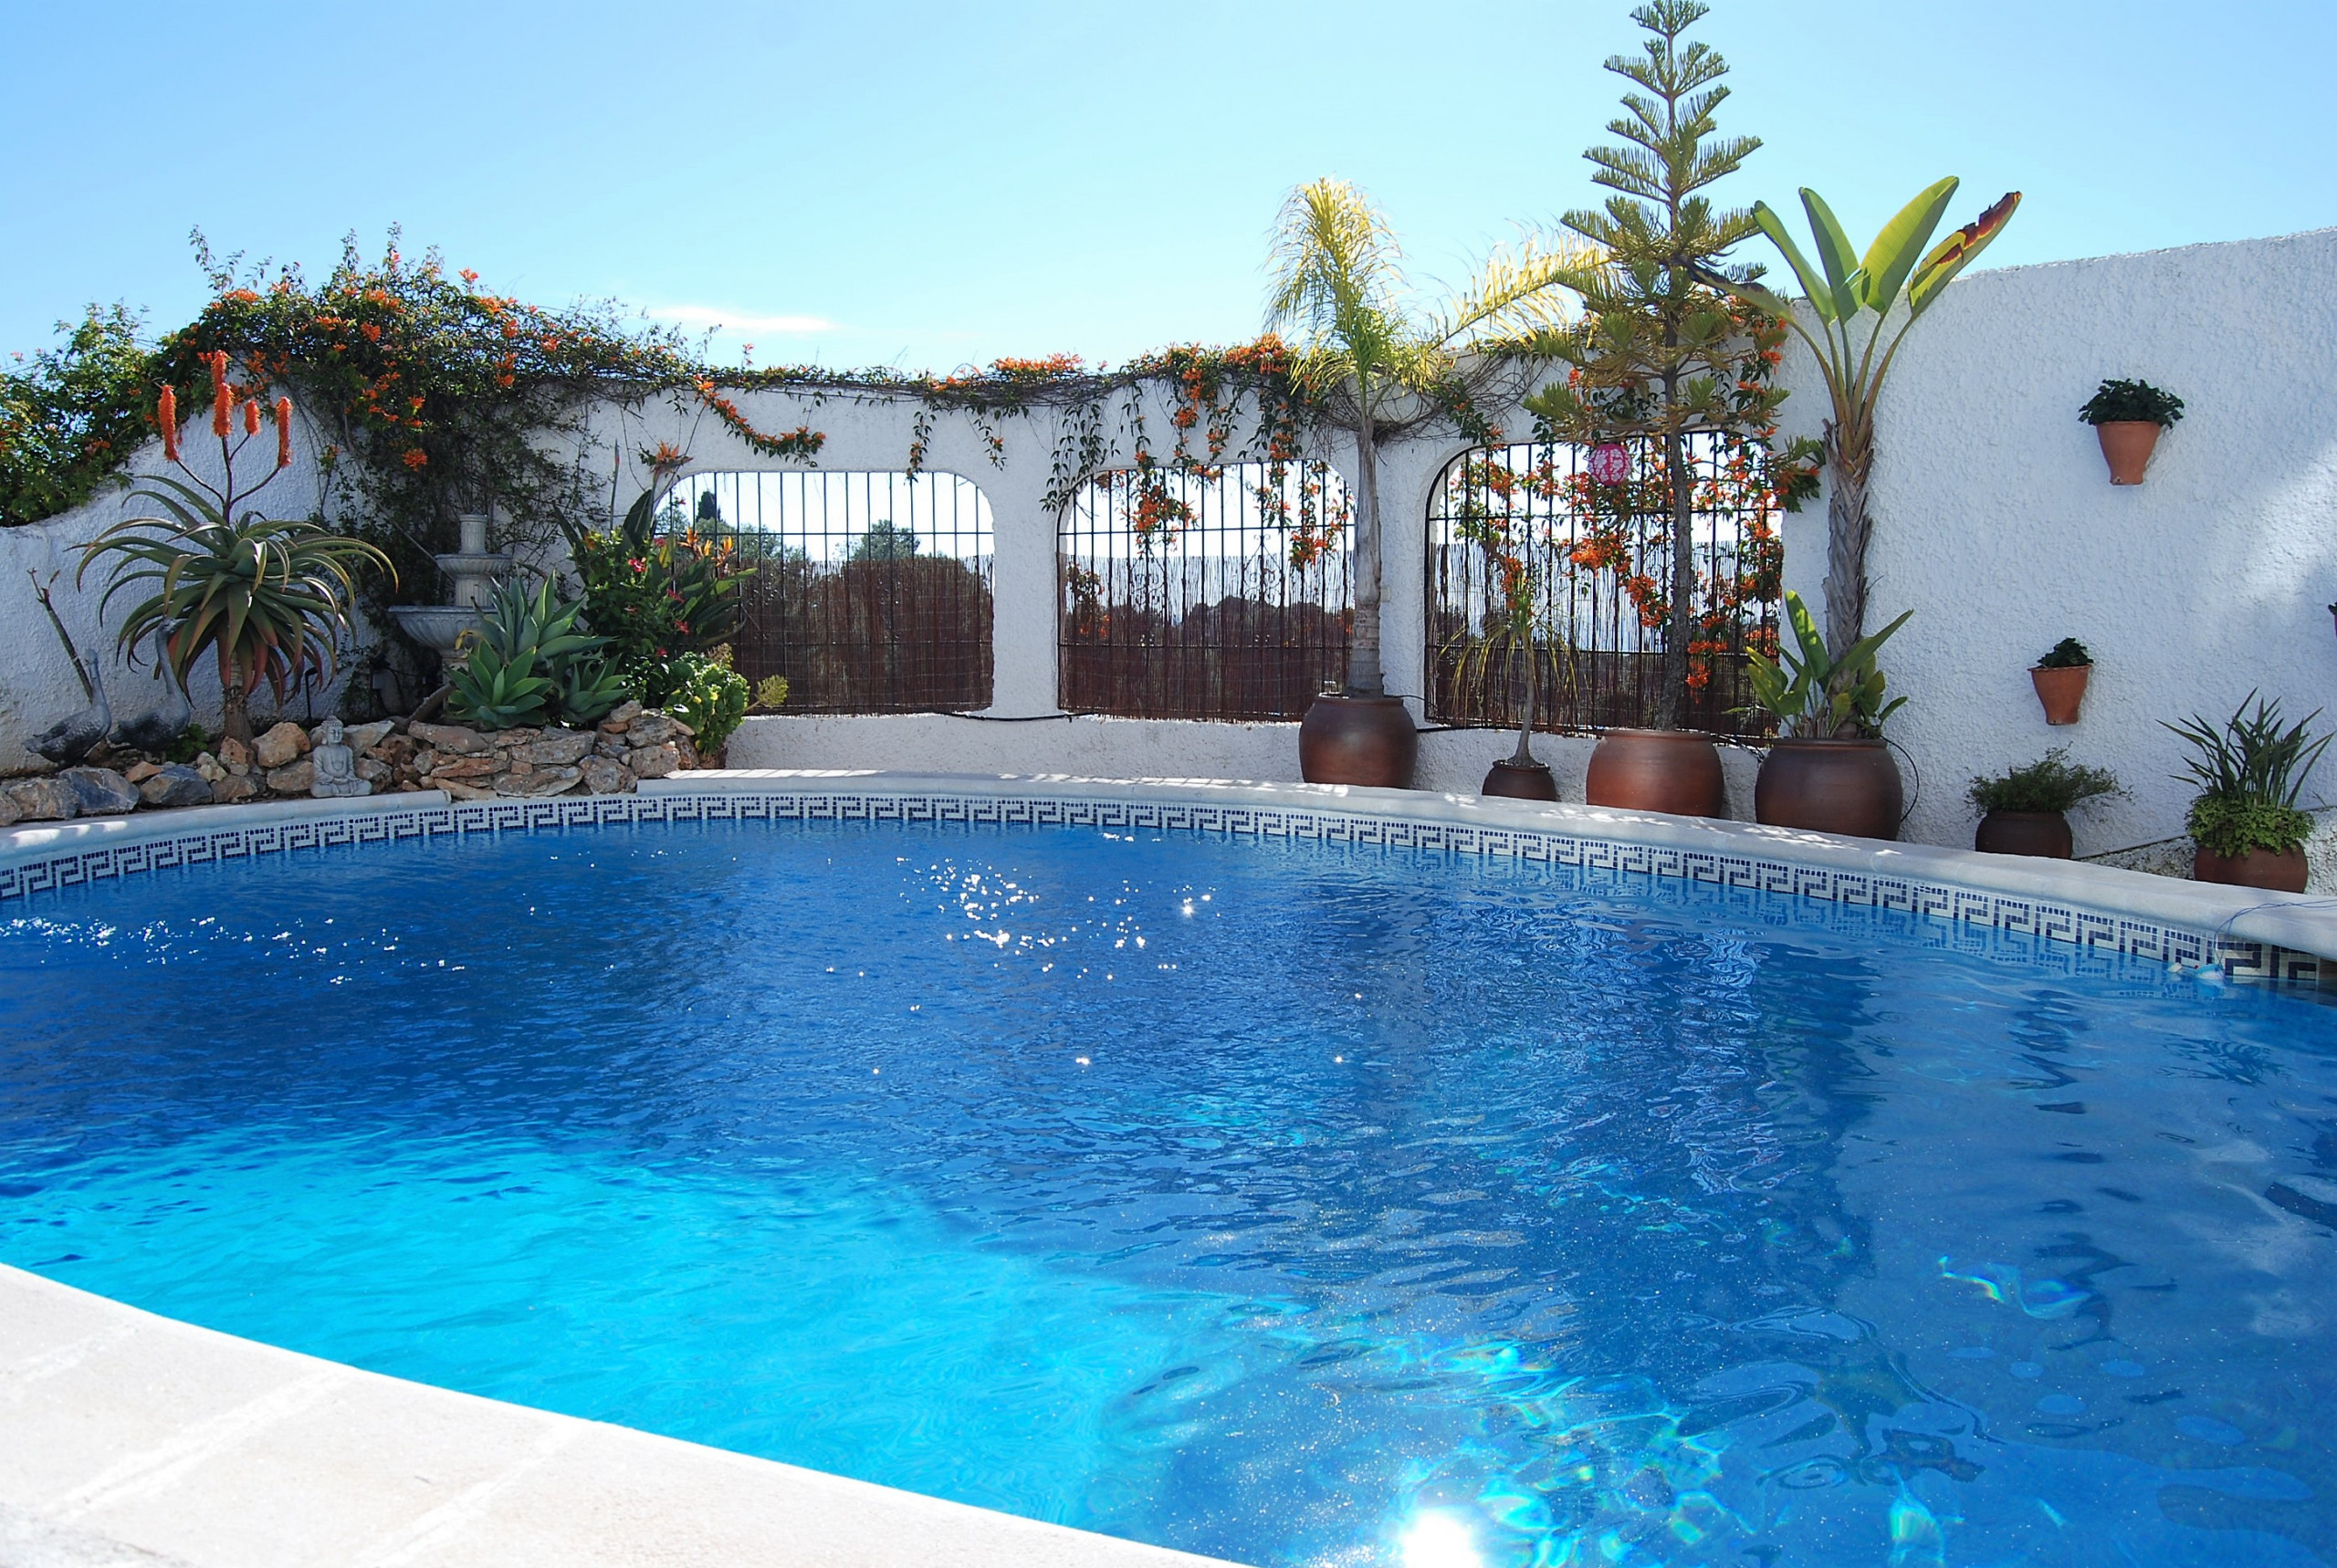 Holiday apartment with private swimming pool | NERJA